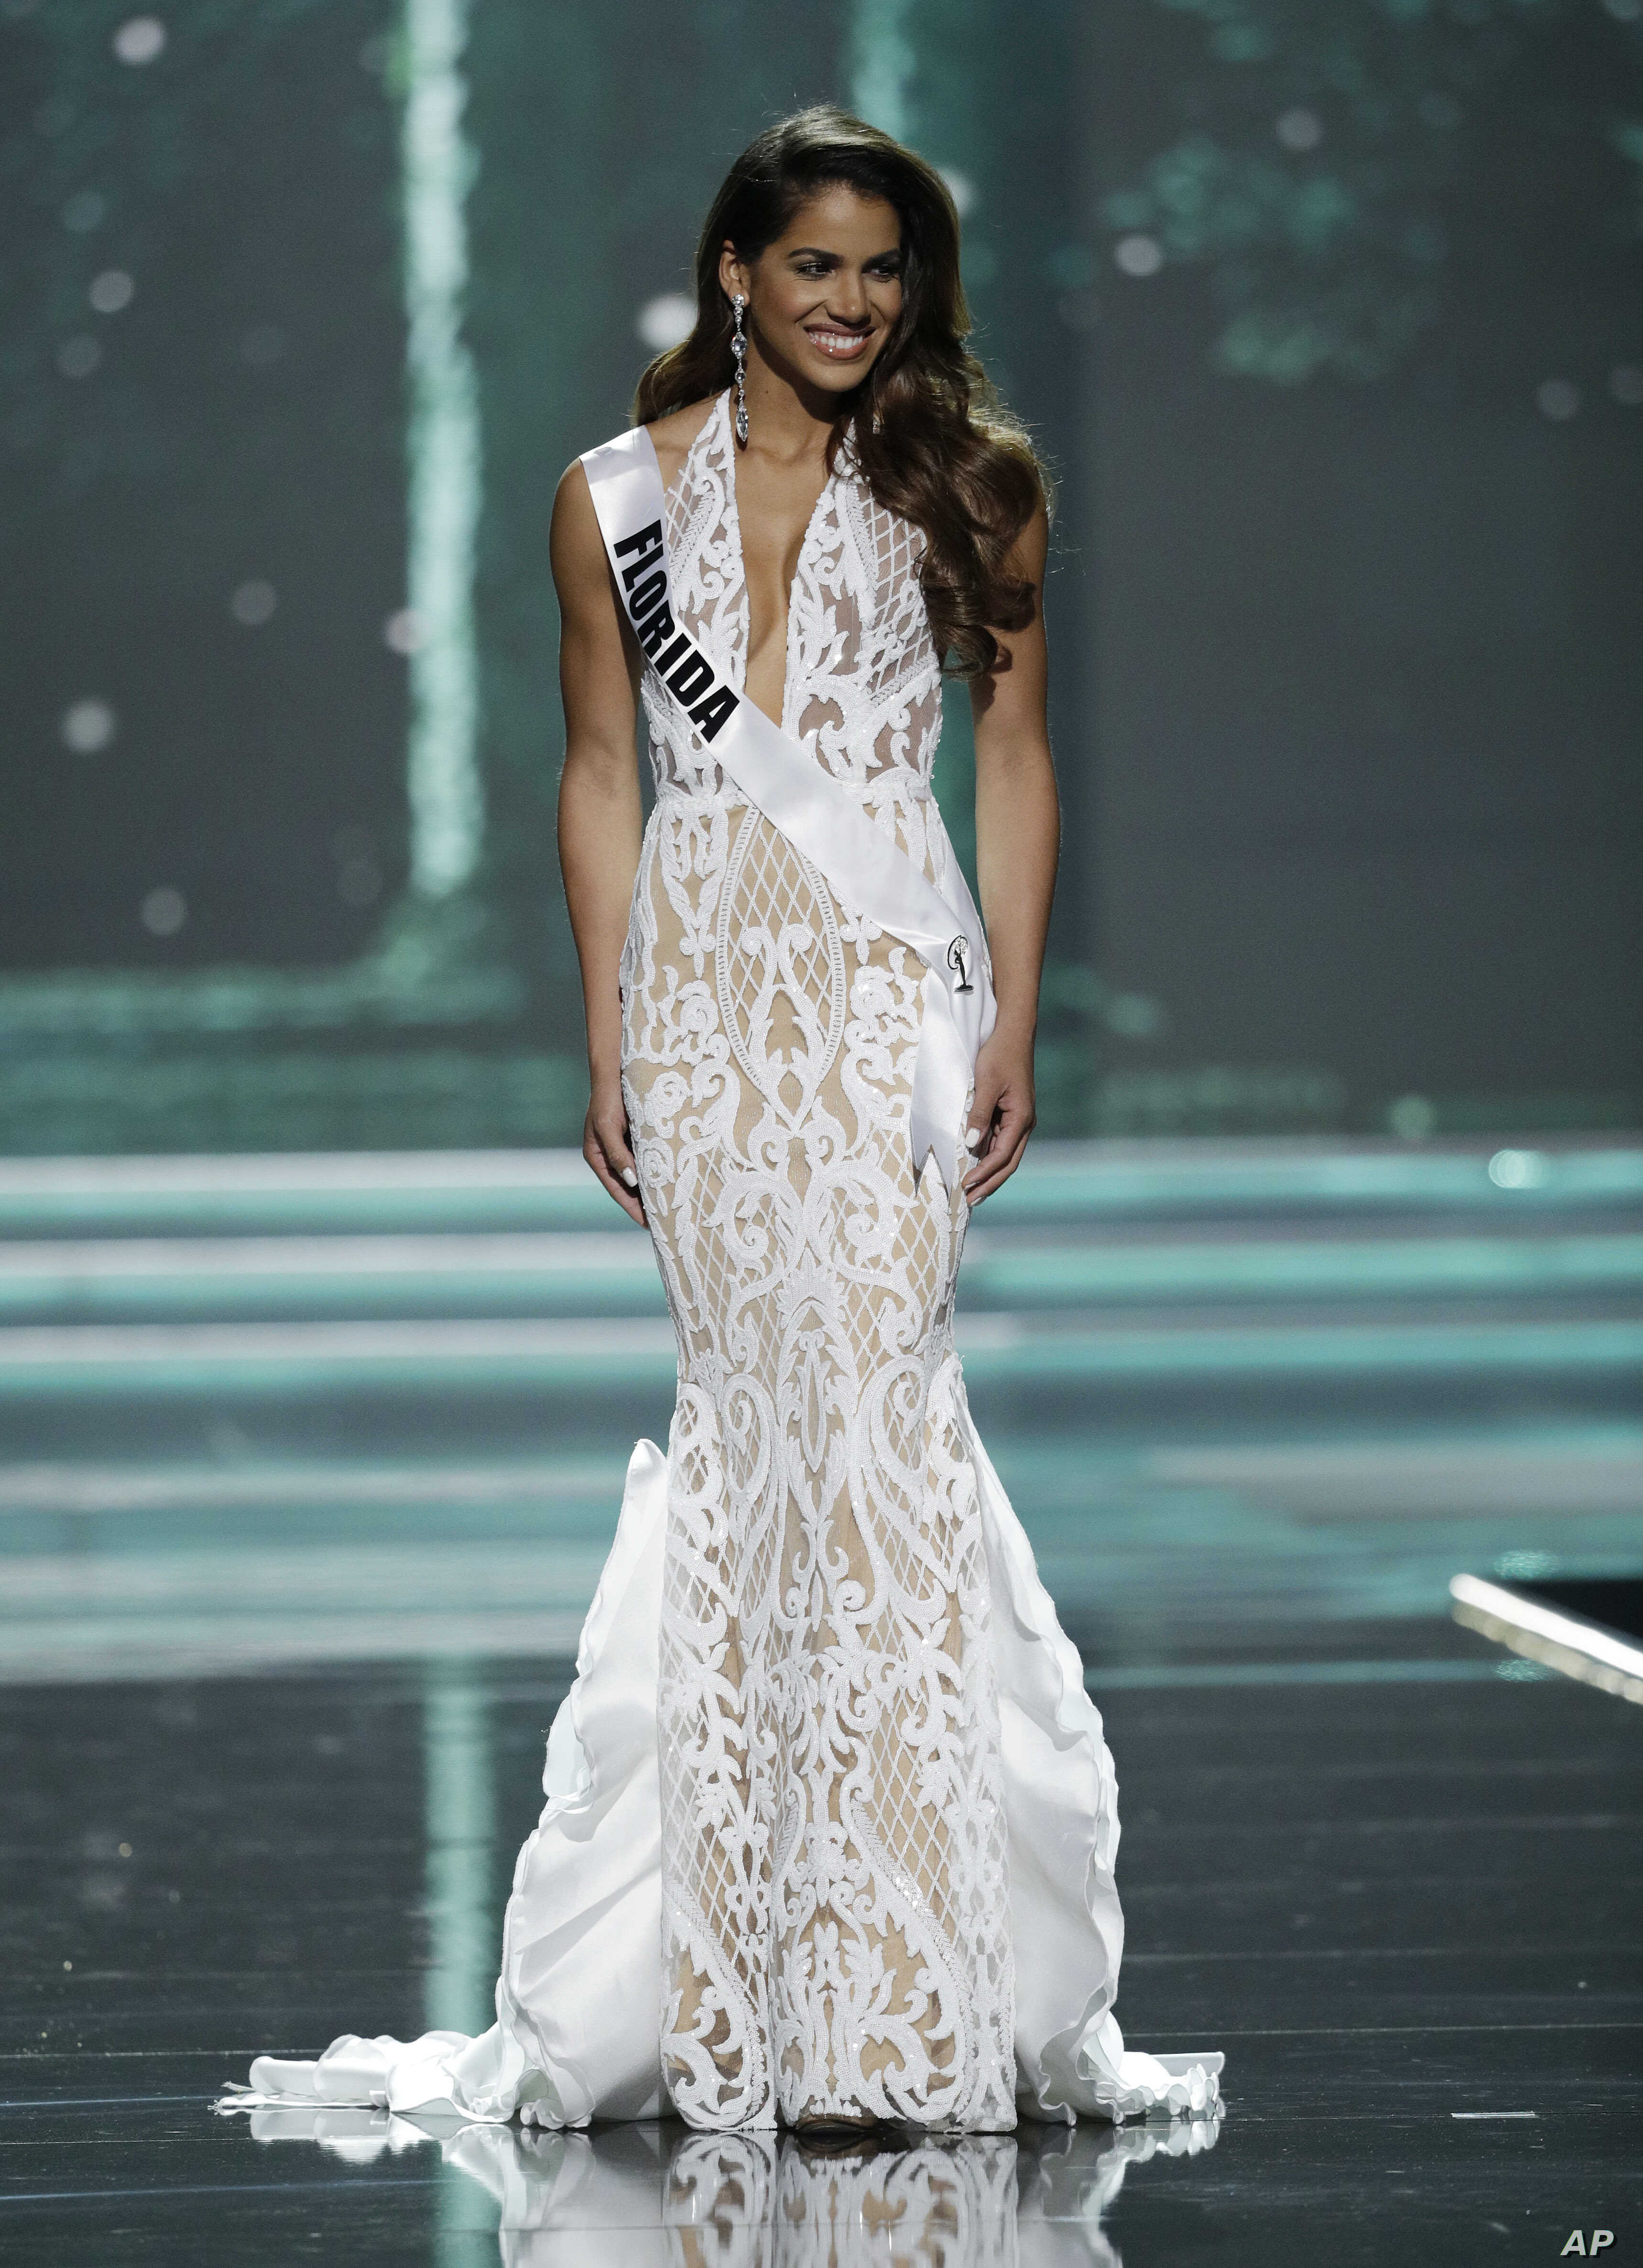 Miss Florida USA Linette De Los Santos competes during a preliminary competition for Miss USA in Las Vegas, May 11, 2017.